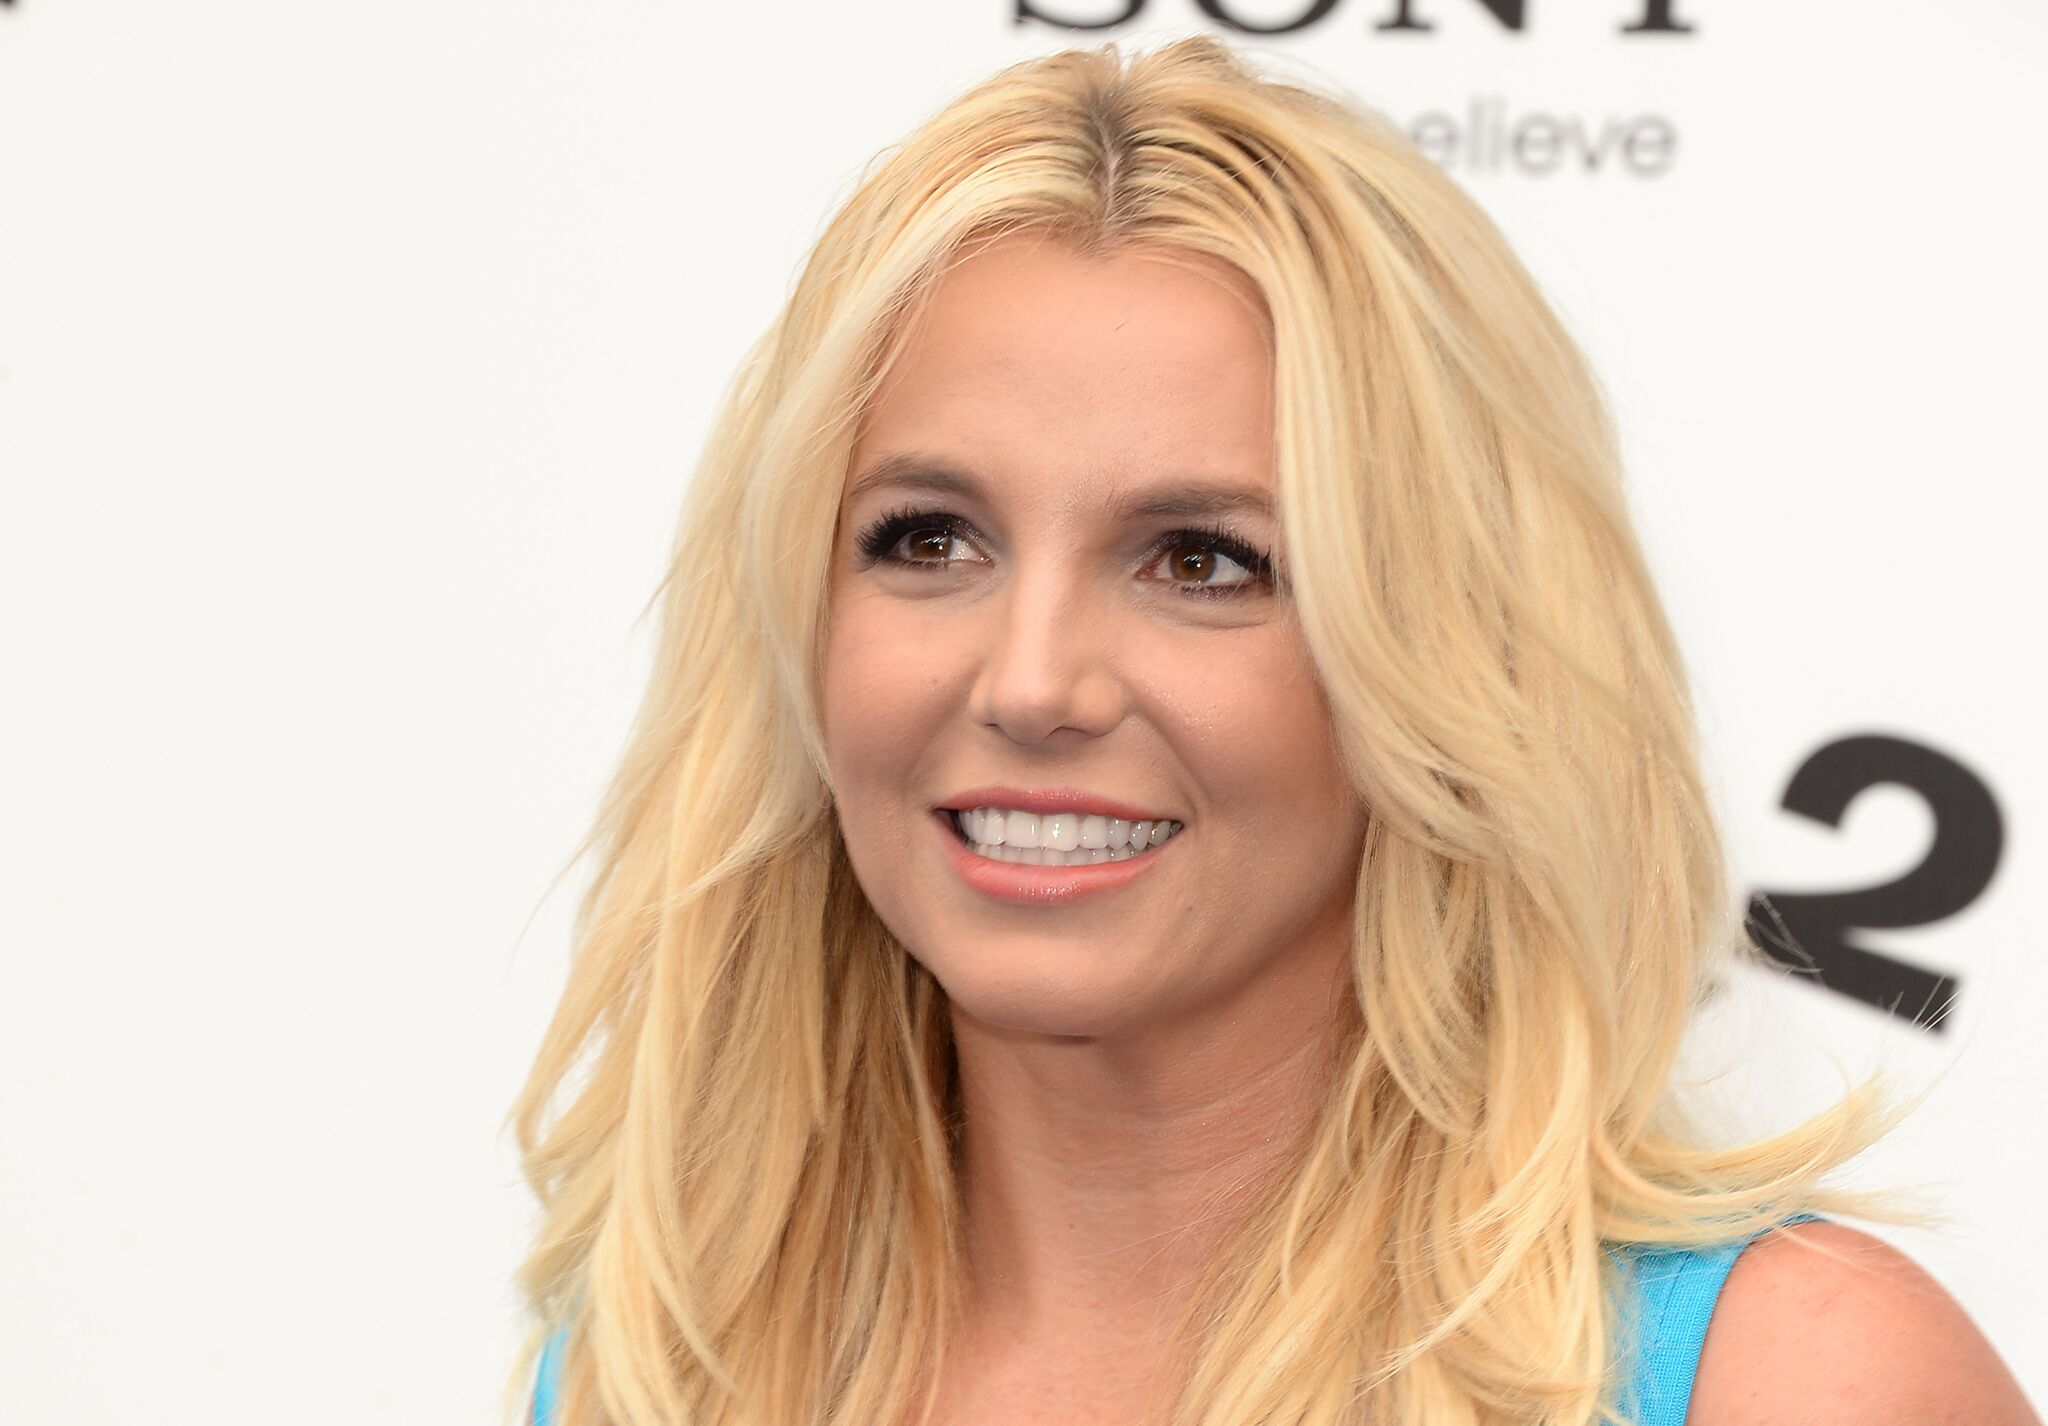 """Singer Britney Spears attends the premiere of Columbia Pictures' """"Smurfs 2"""" at Regency Village Theatre on July 28, 2013 